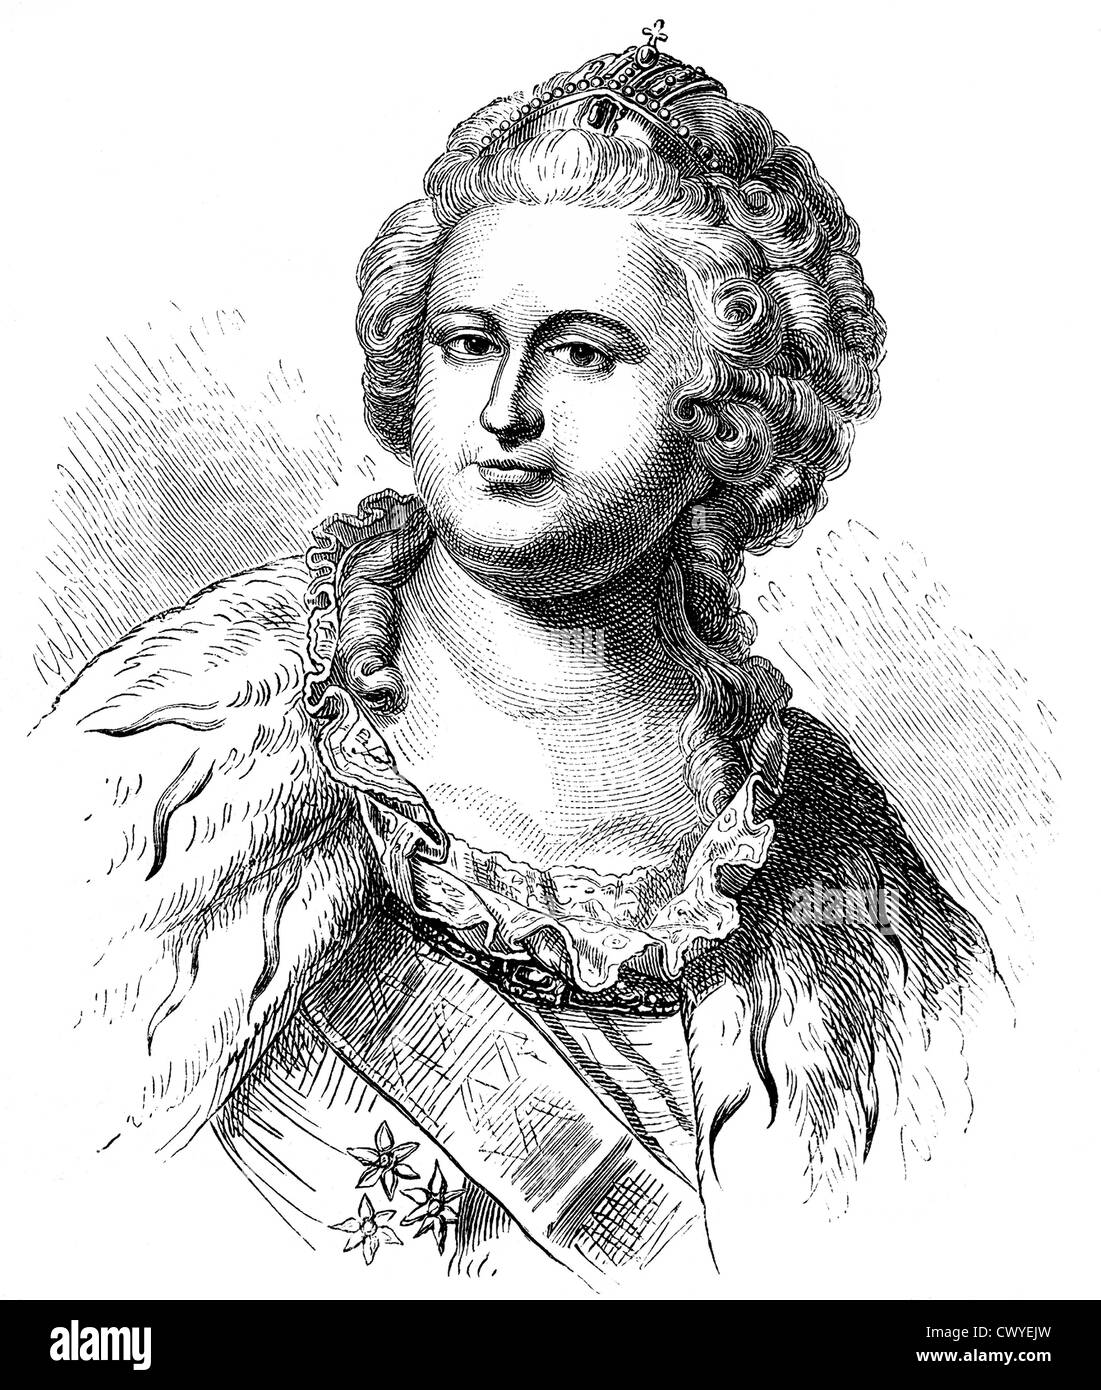 Catherine II or Catherine the Great, 1729 - 1796, Empress of Russia, Duchess of Holstein-Gottorp and Ruler of Jever Stock Photo